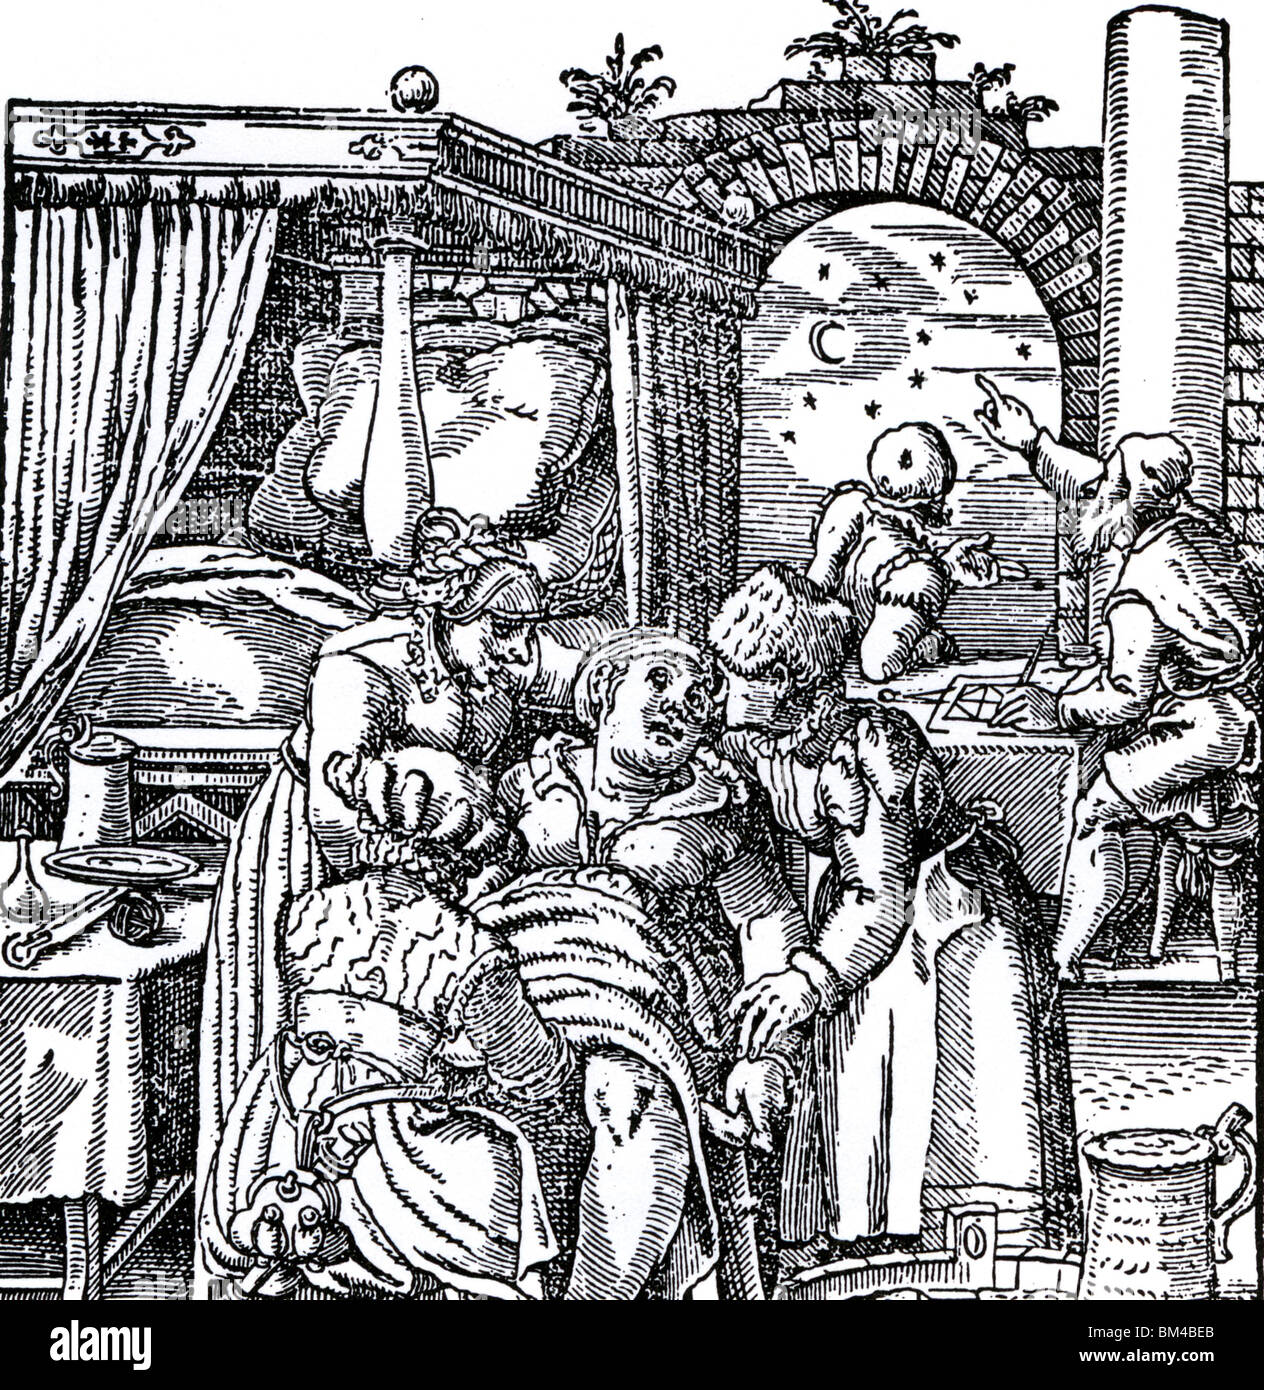 ASTROLOGY - 16th century woodcut showing Astrologers casting a birth chart for the child being born in the foreground - Stock Image